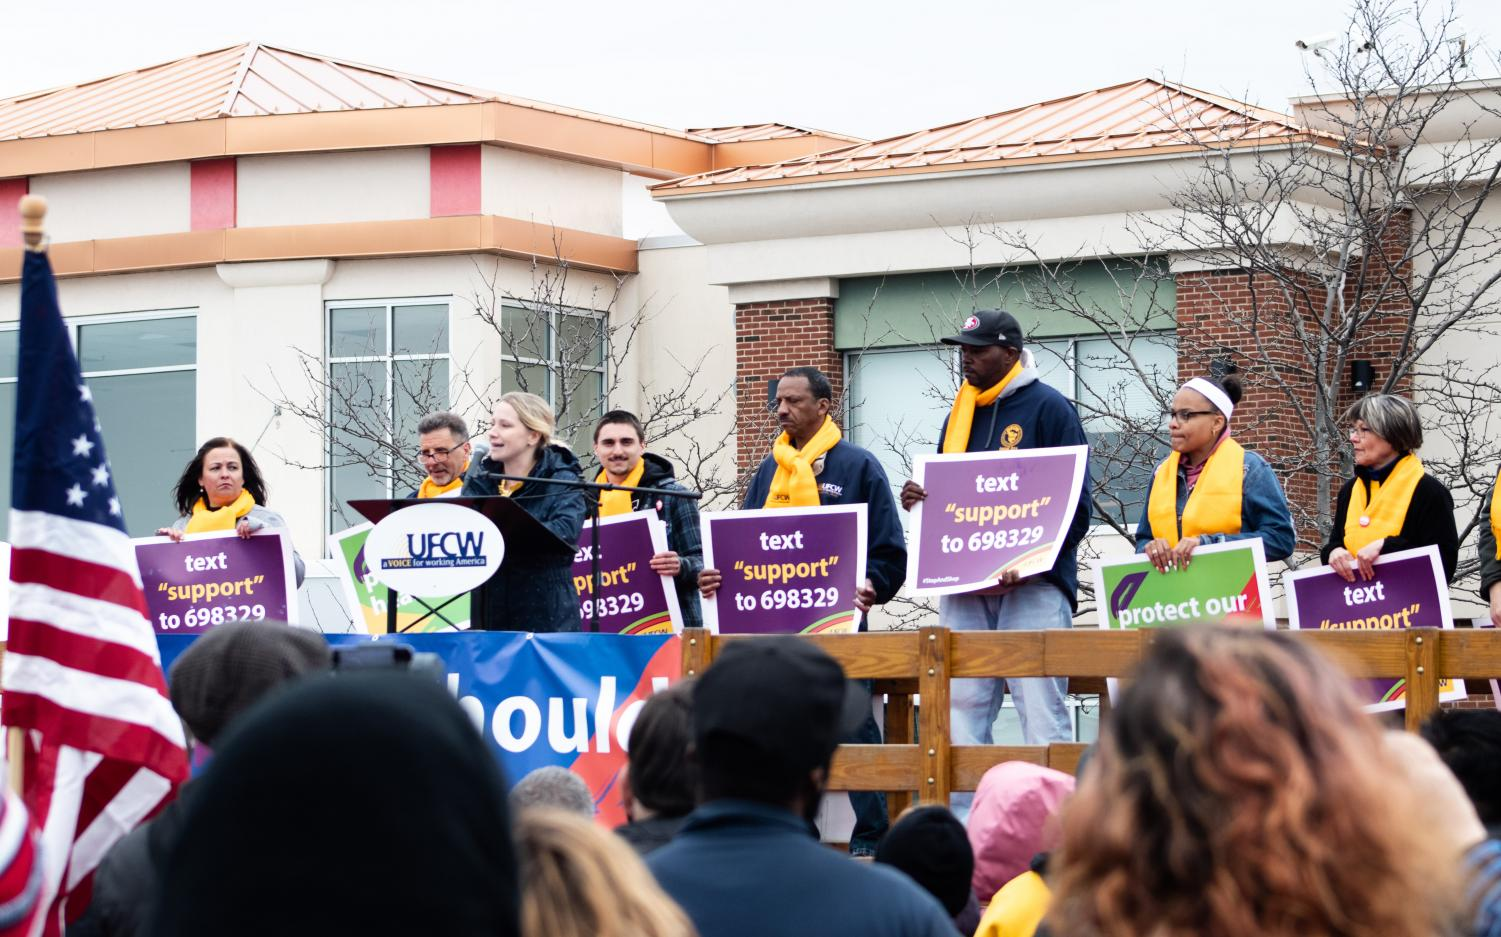 A+group+of+regional+Stop+%26+Shop+employees+addresses+the+crowd+at+the+rally+in+Dorchester.+